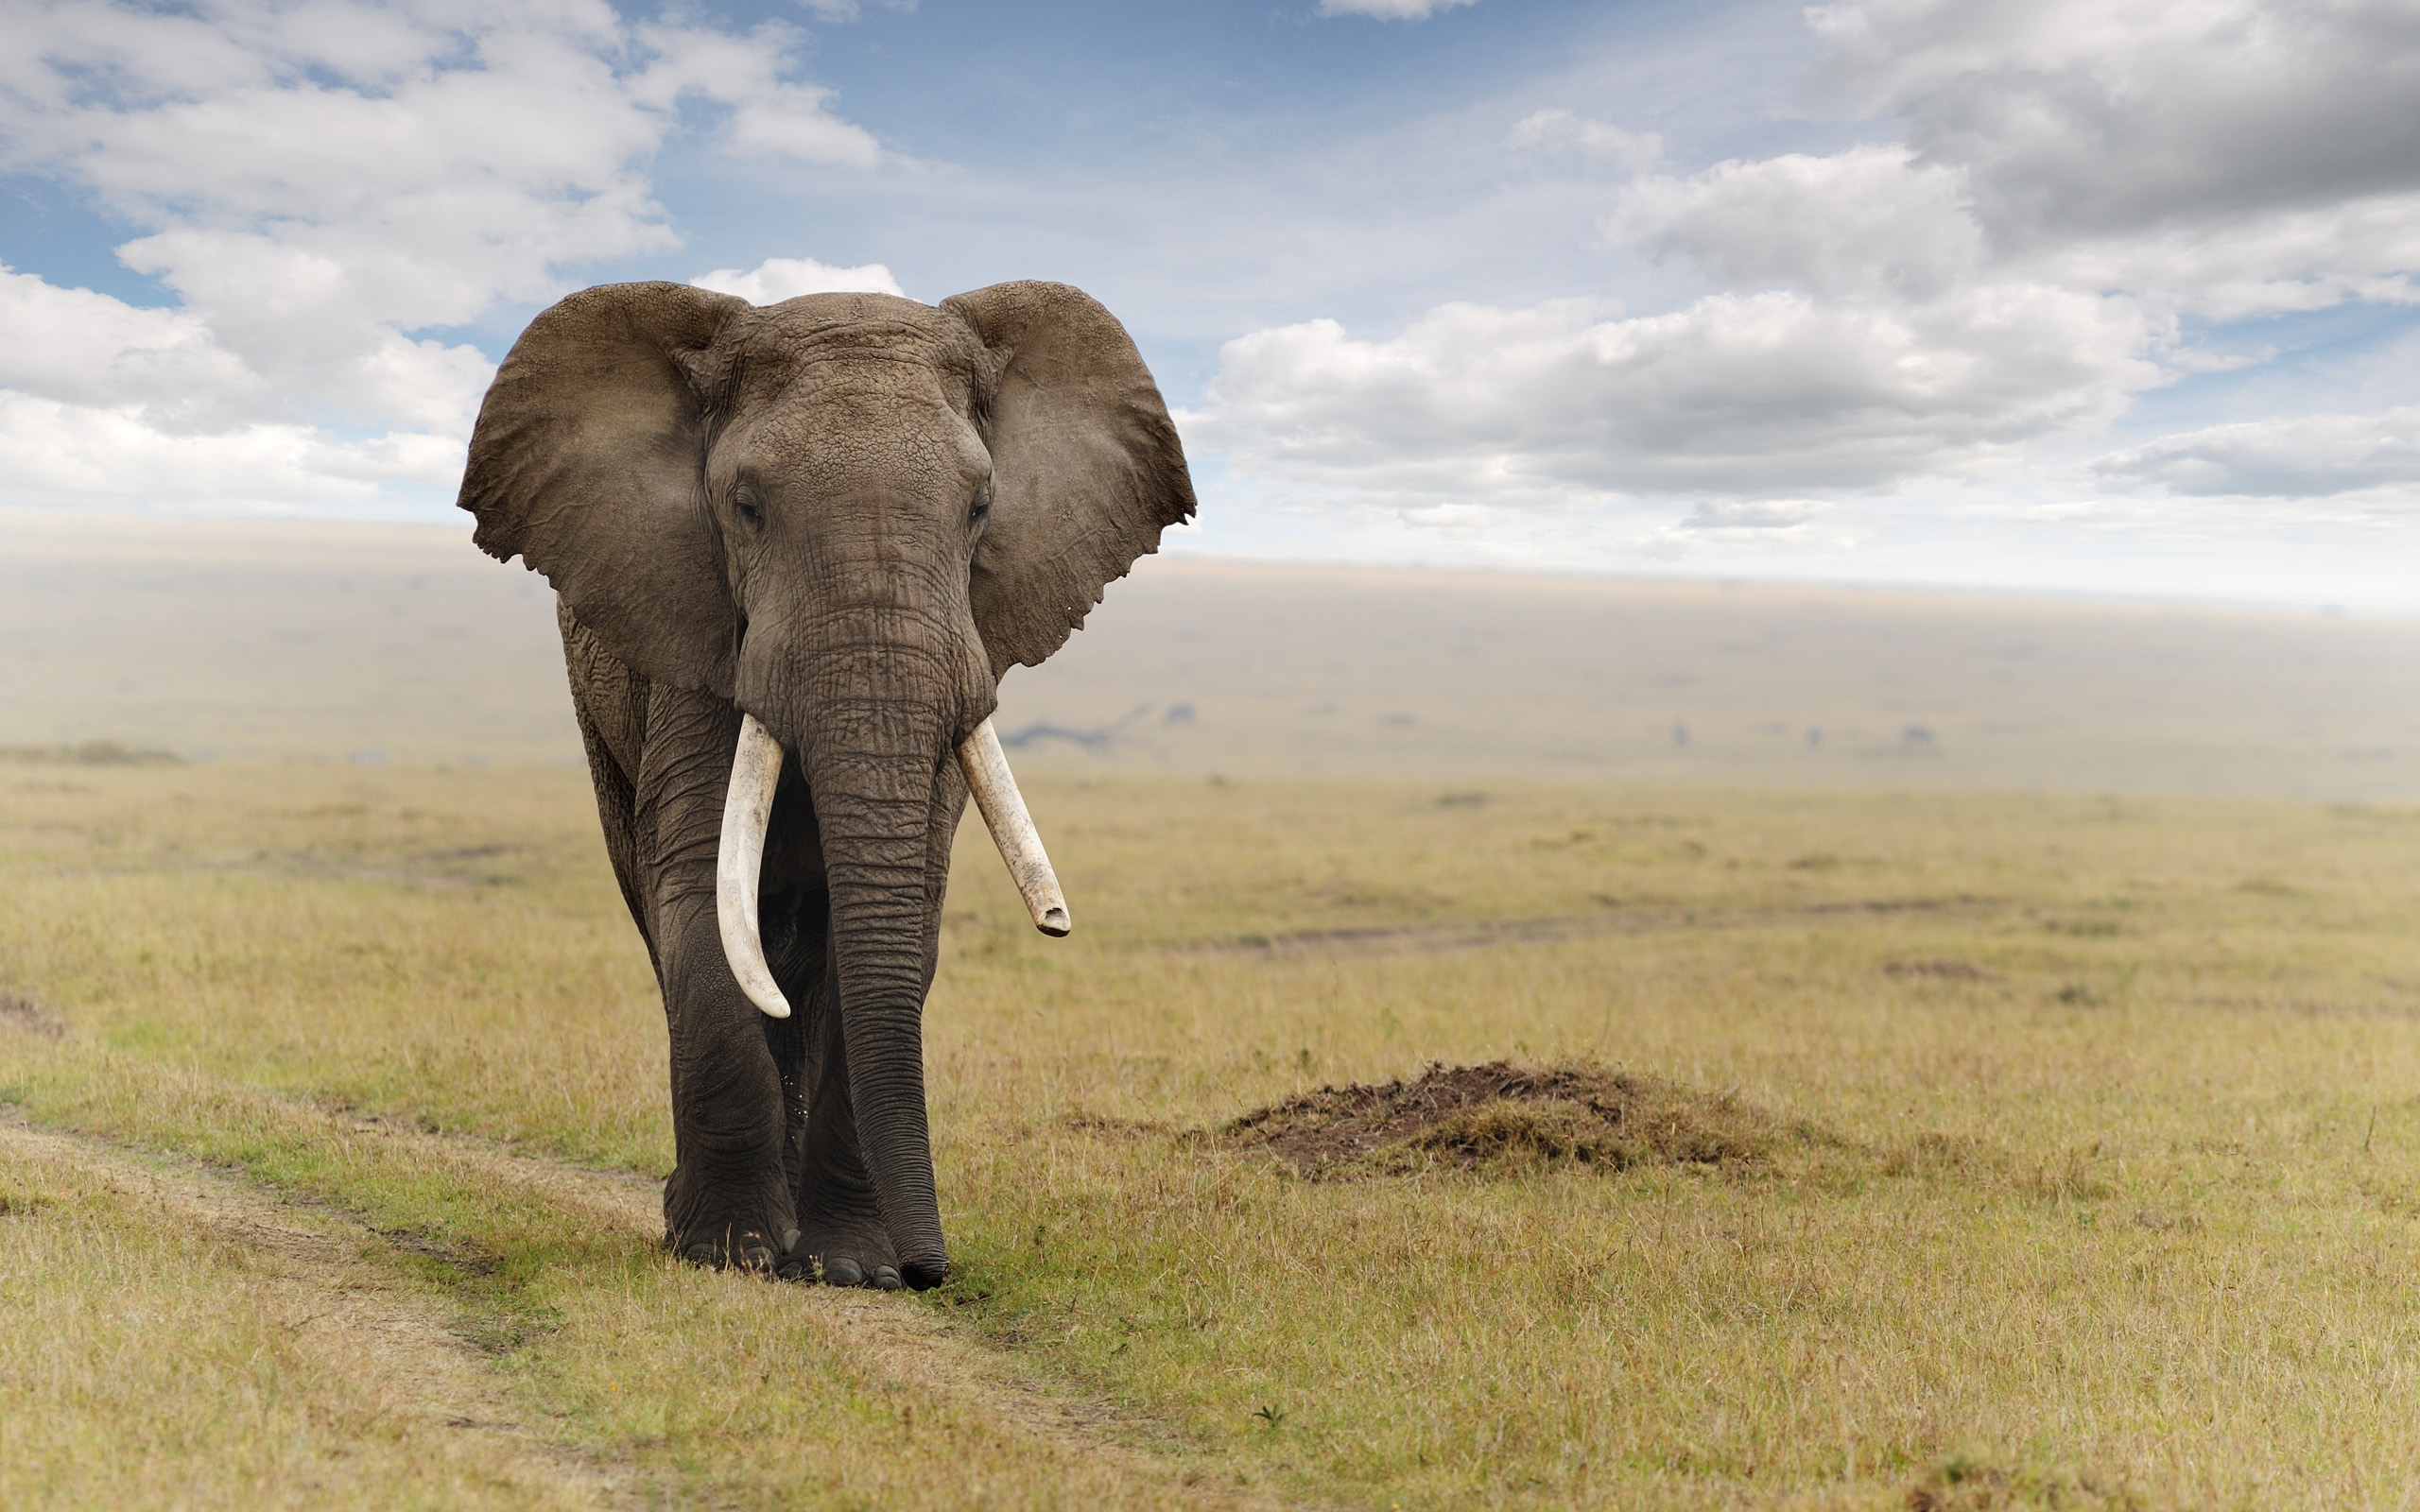 Elephant Computer Wallpapers, Desktop Backgrounds